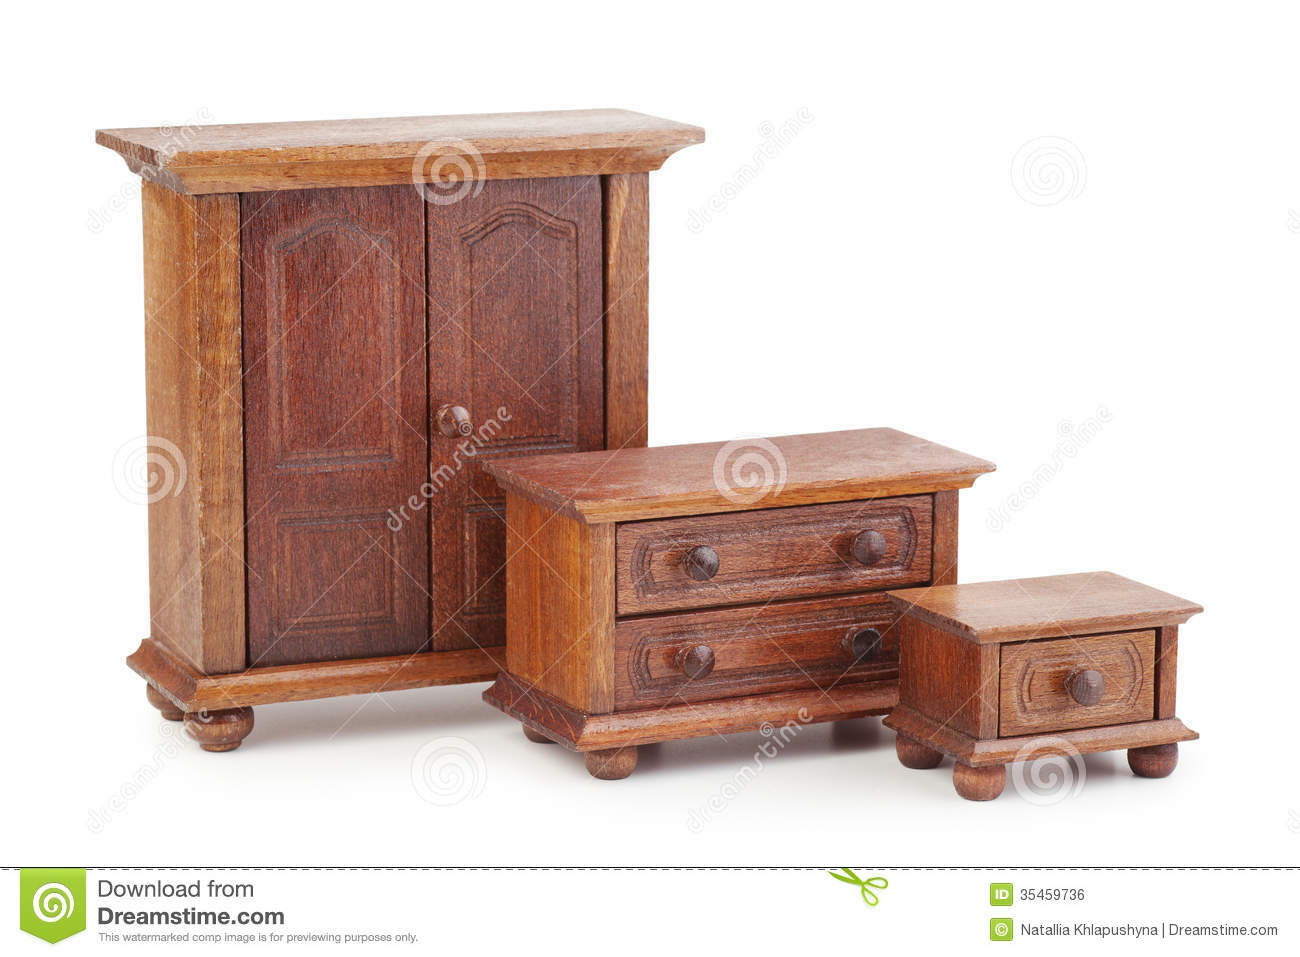 Doll wooden furniture set wardrobe chest of drawers and nights royalty free stock image Www wooden furniture com